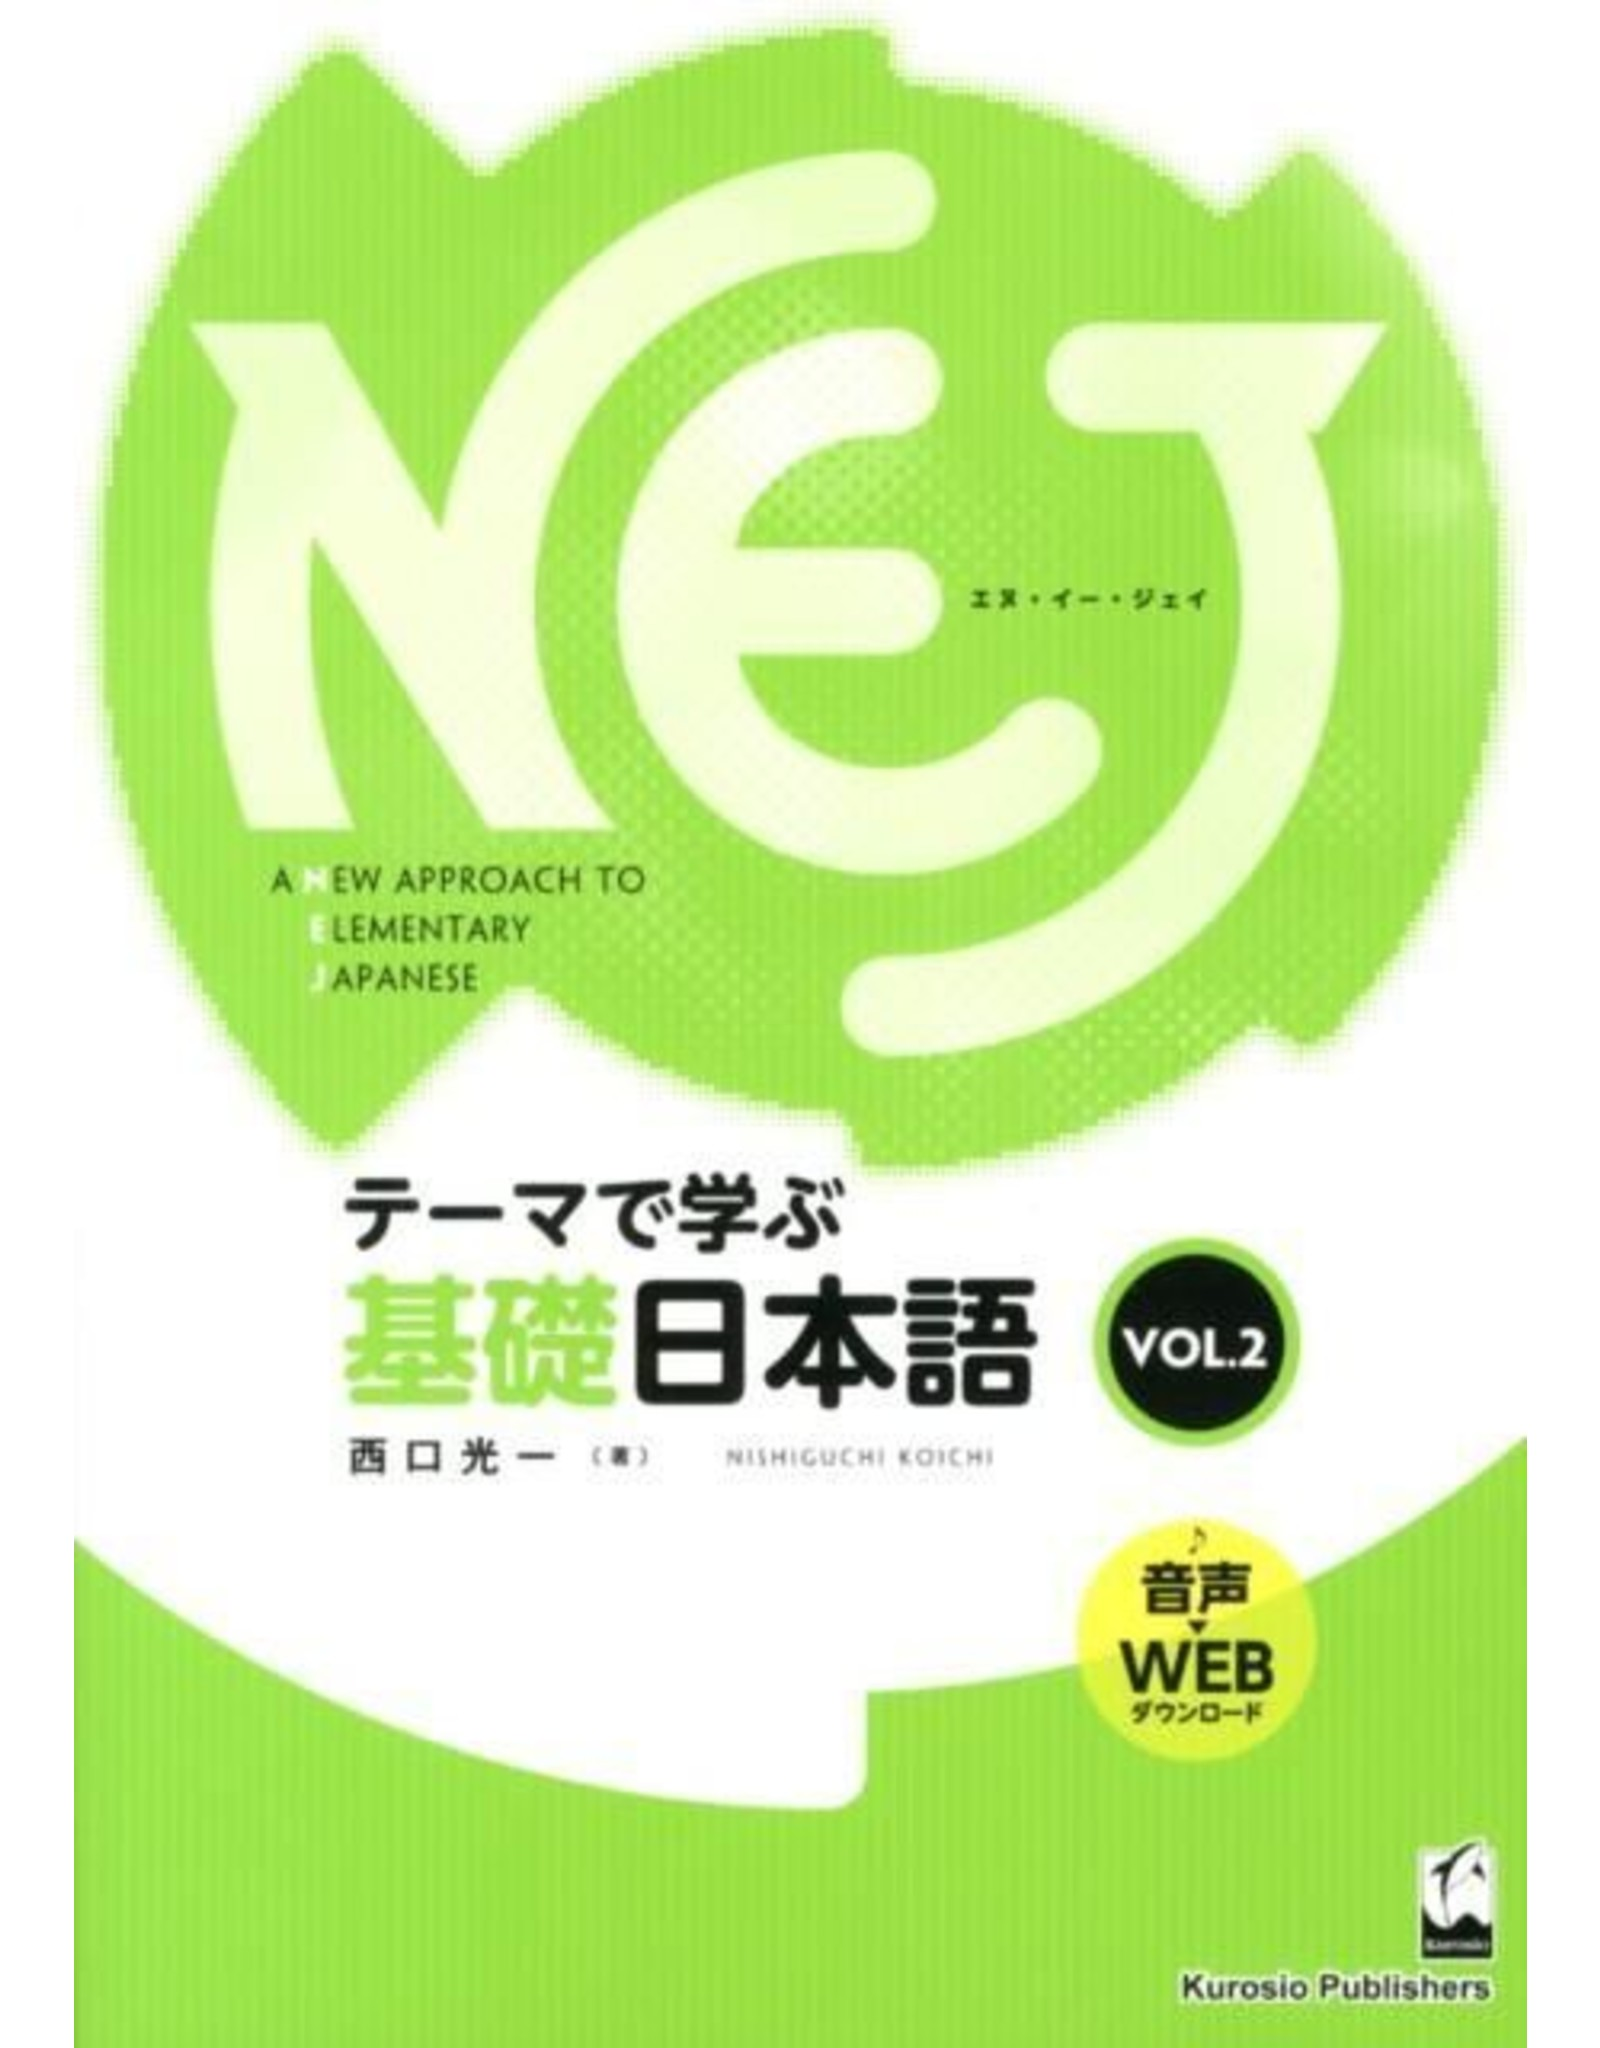 KUROSHIO NEJ: A NEW APPROACH TO ELEMENTARY JAPANESE VOL. 2